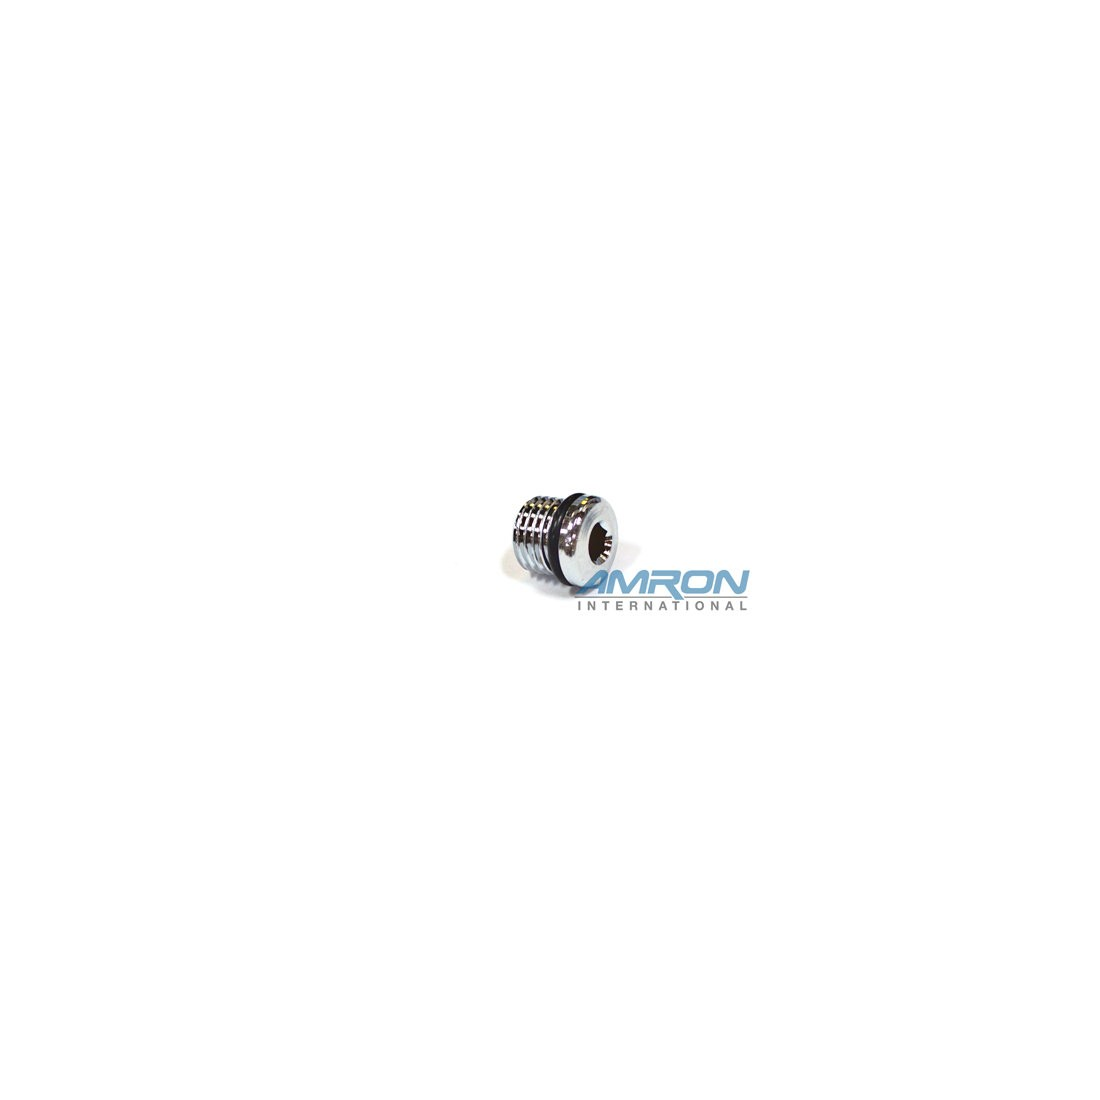 Kirby Morgan 550-095 Low Pressure Plug without O-Ring